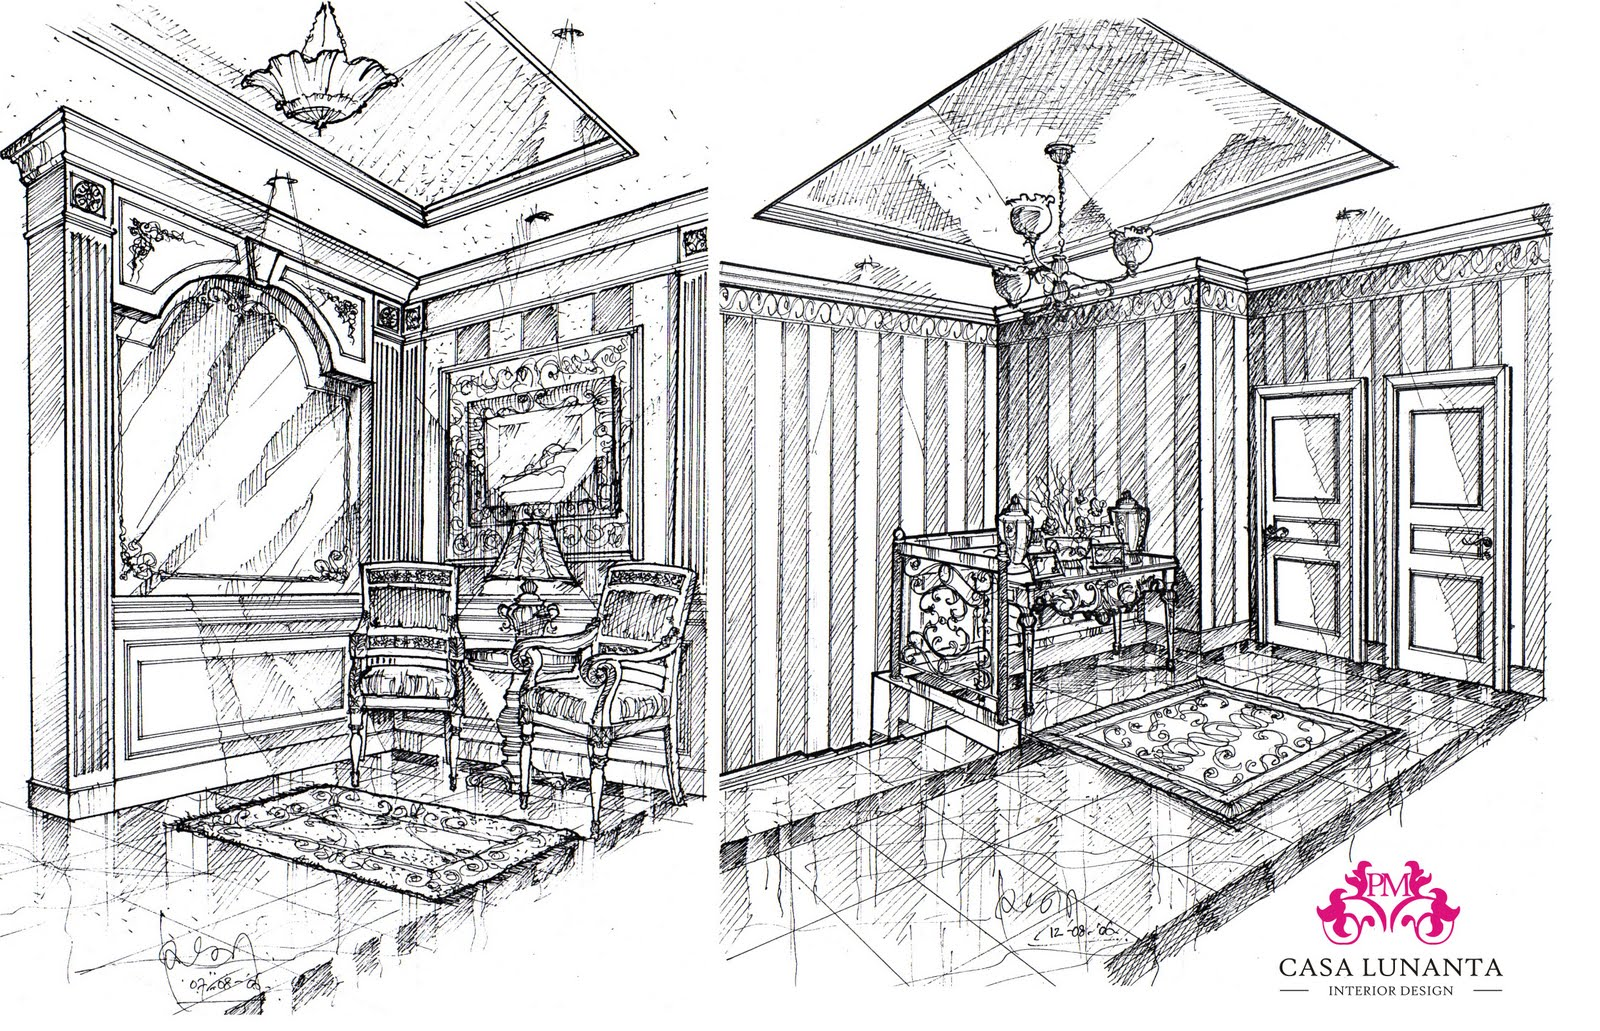 perspective drawings - Interior Design Drawings